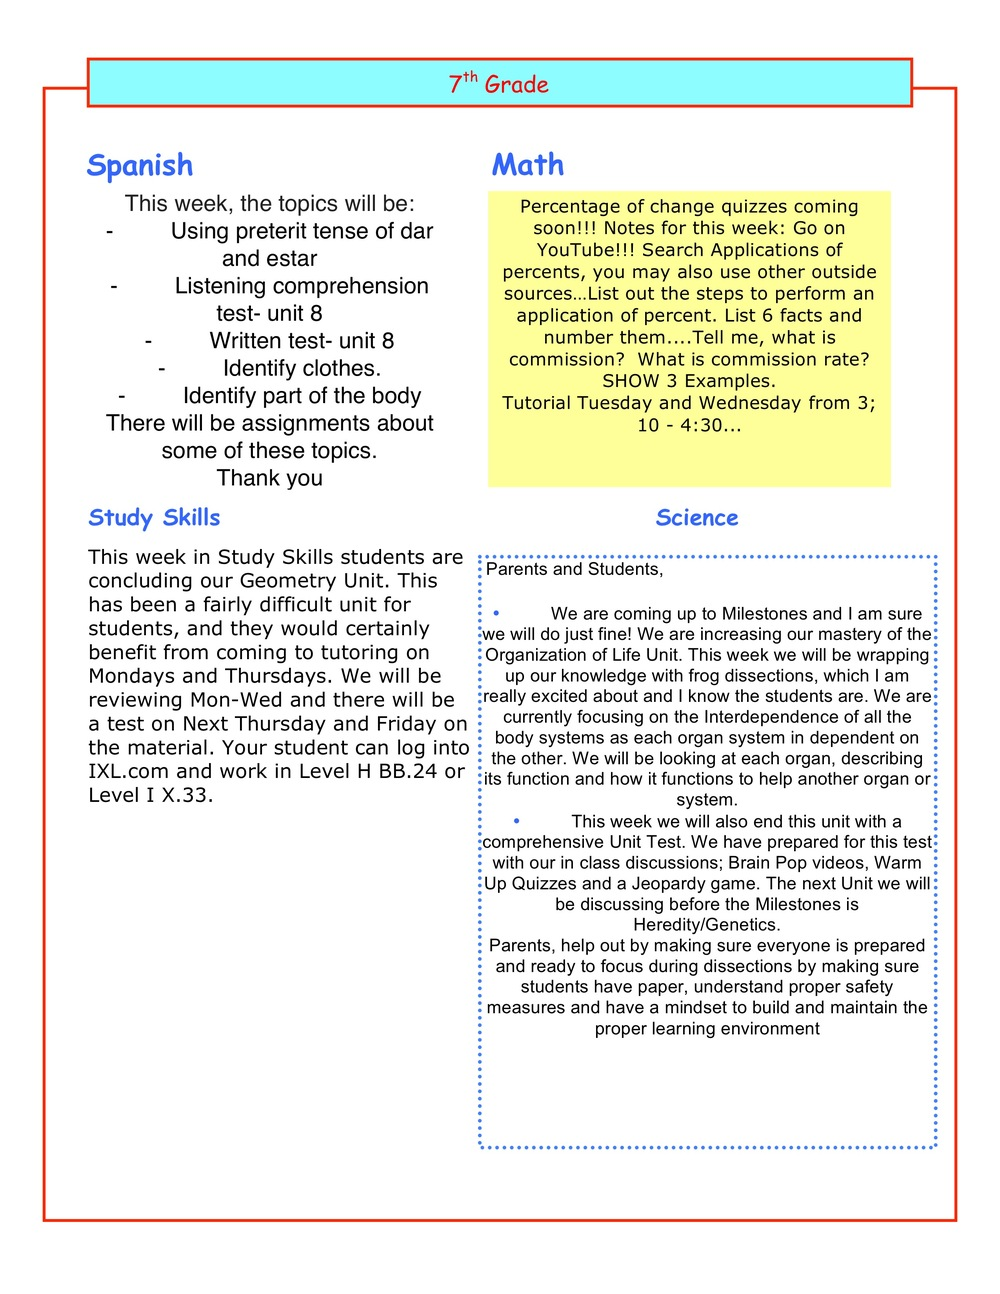 Newsletter Image7th grade 3-23-16 2.jpeg